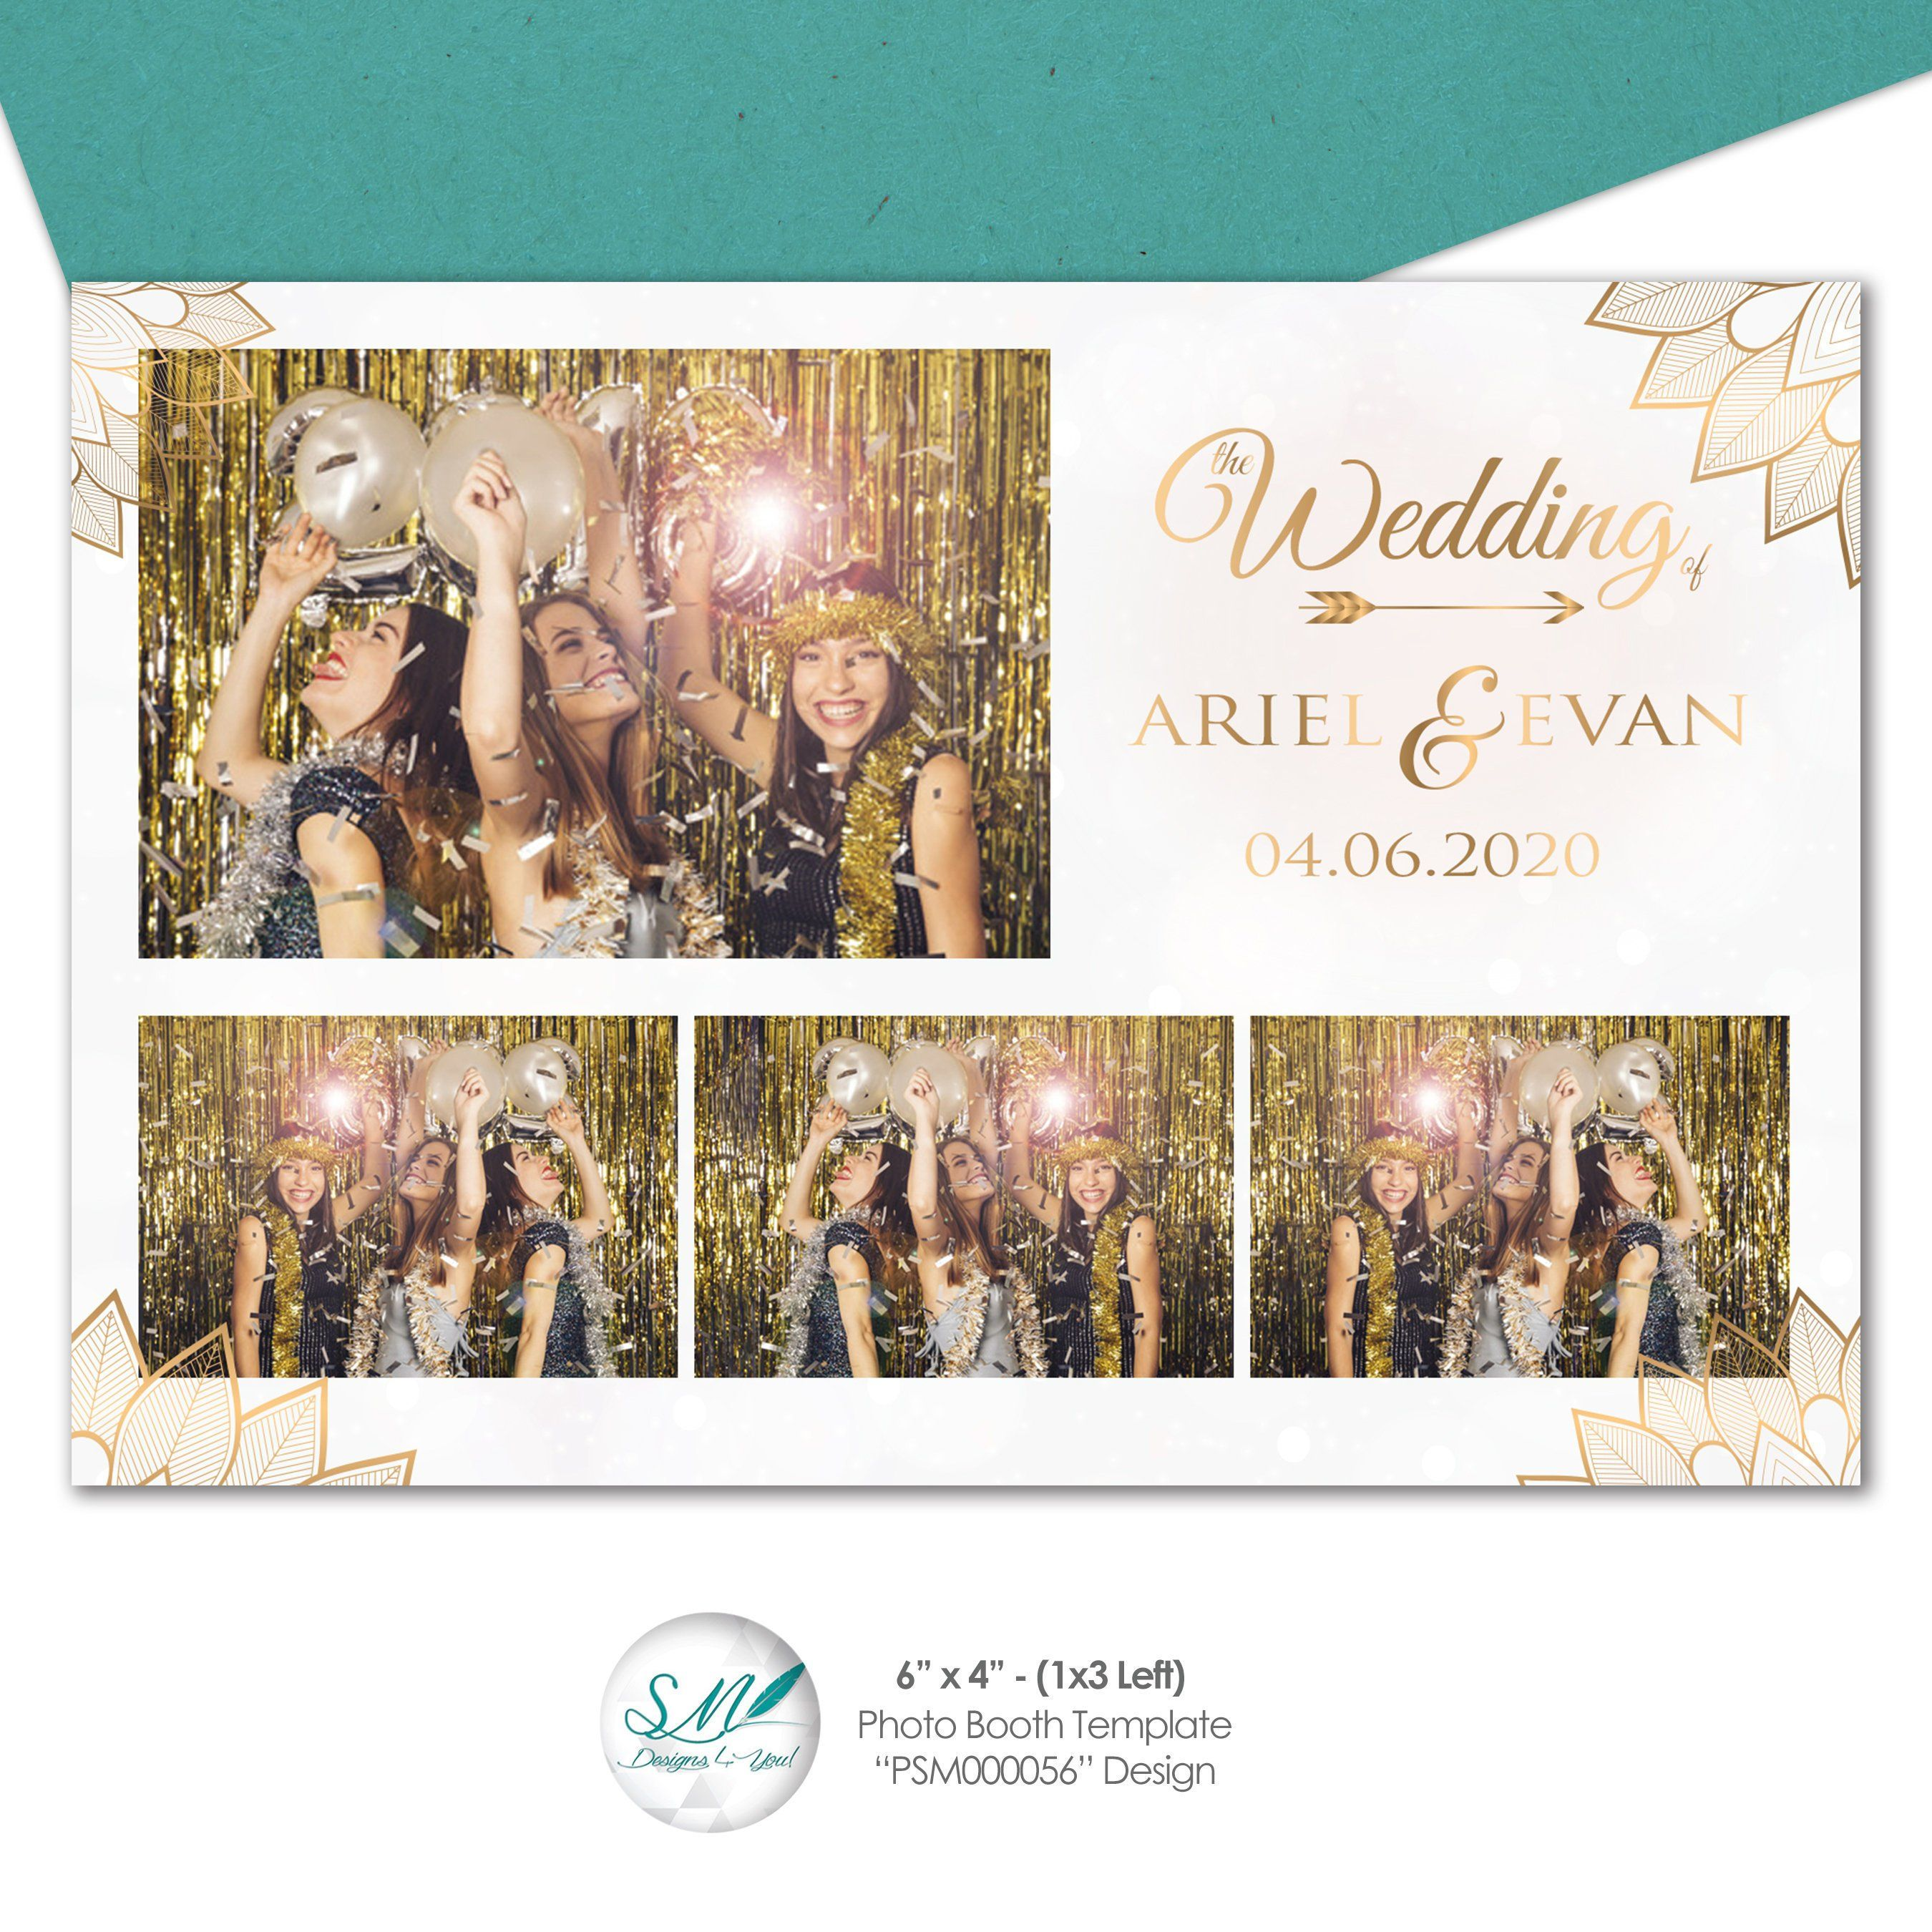 Gold White Feather Photo Booth 4x6 Postcard Digital File Etsy Photobooth Template Photobooth Pictures Photo Booth Photo booth templates for sale